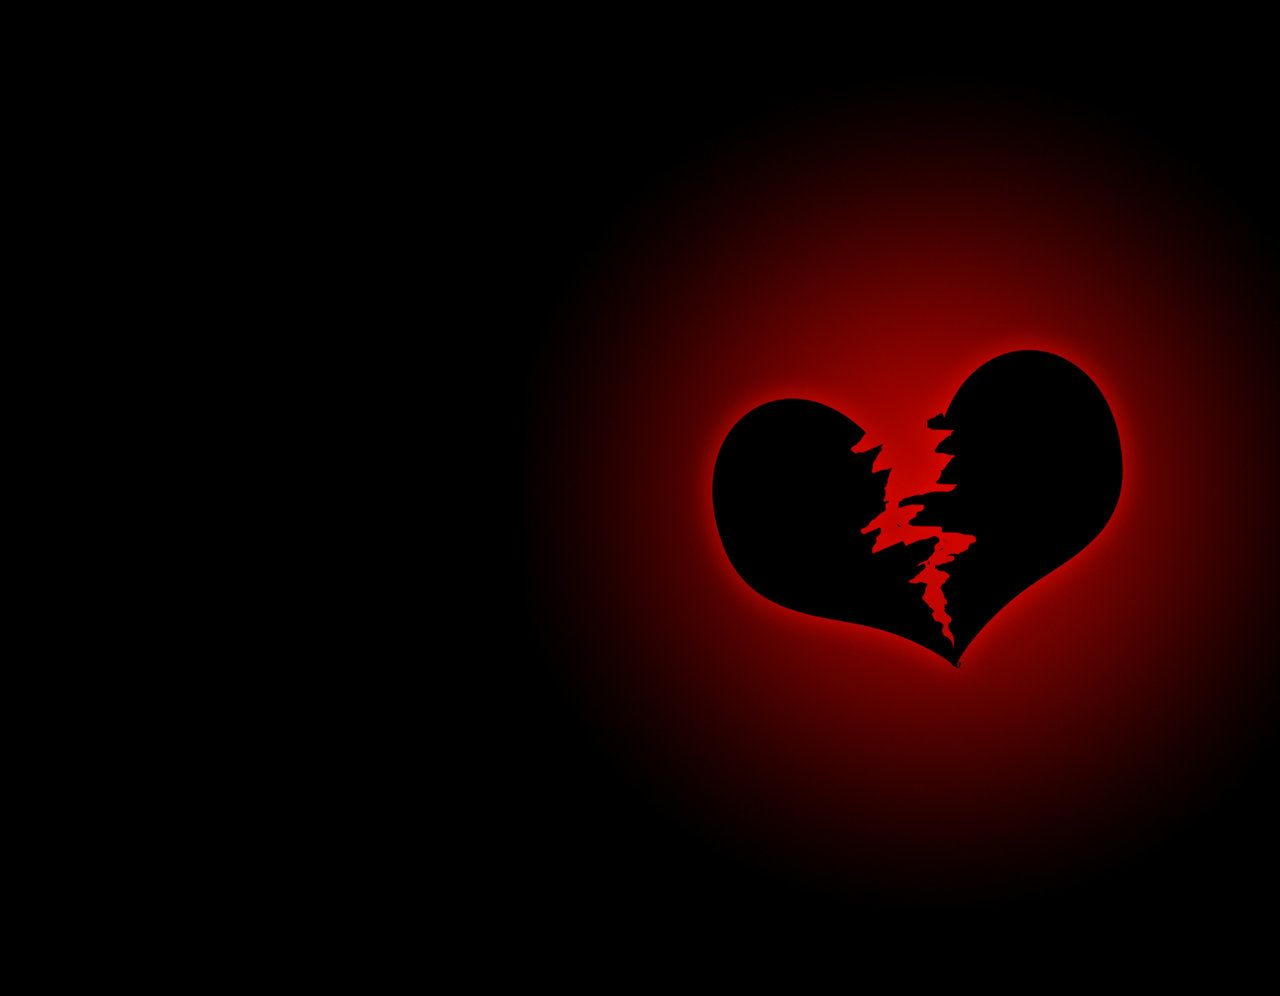 Broken hearts wallpaper #97985 at Love Wallpapers 1080p HD ... Broken Heart Pinterest ...